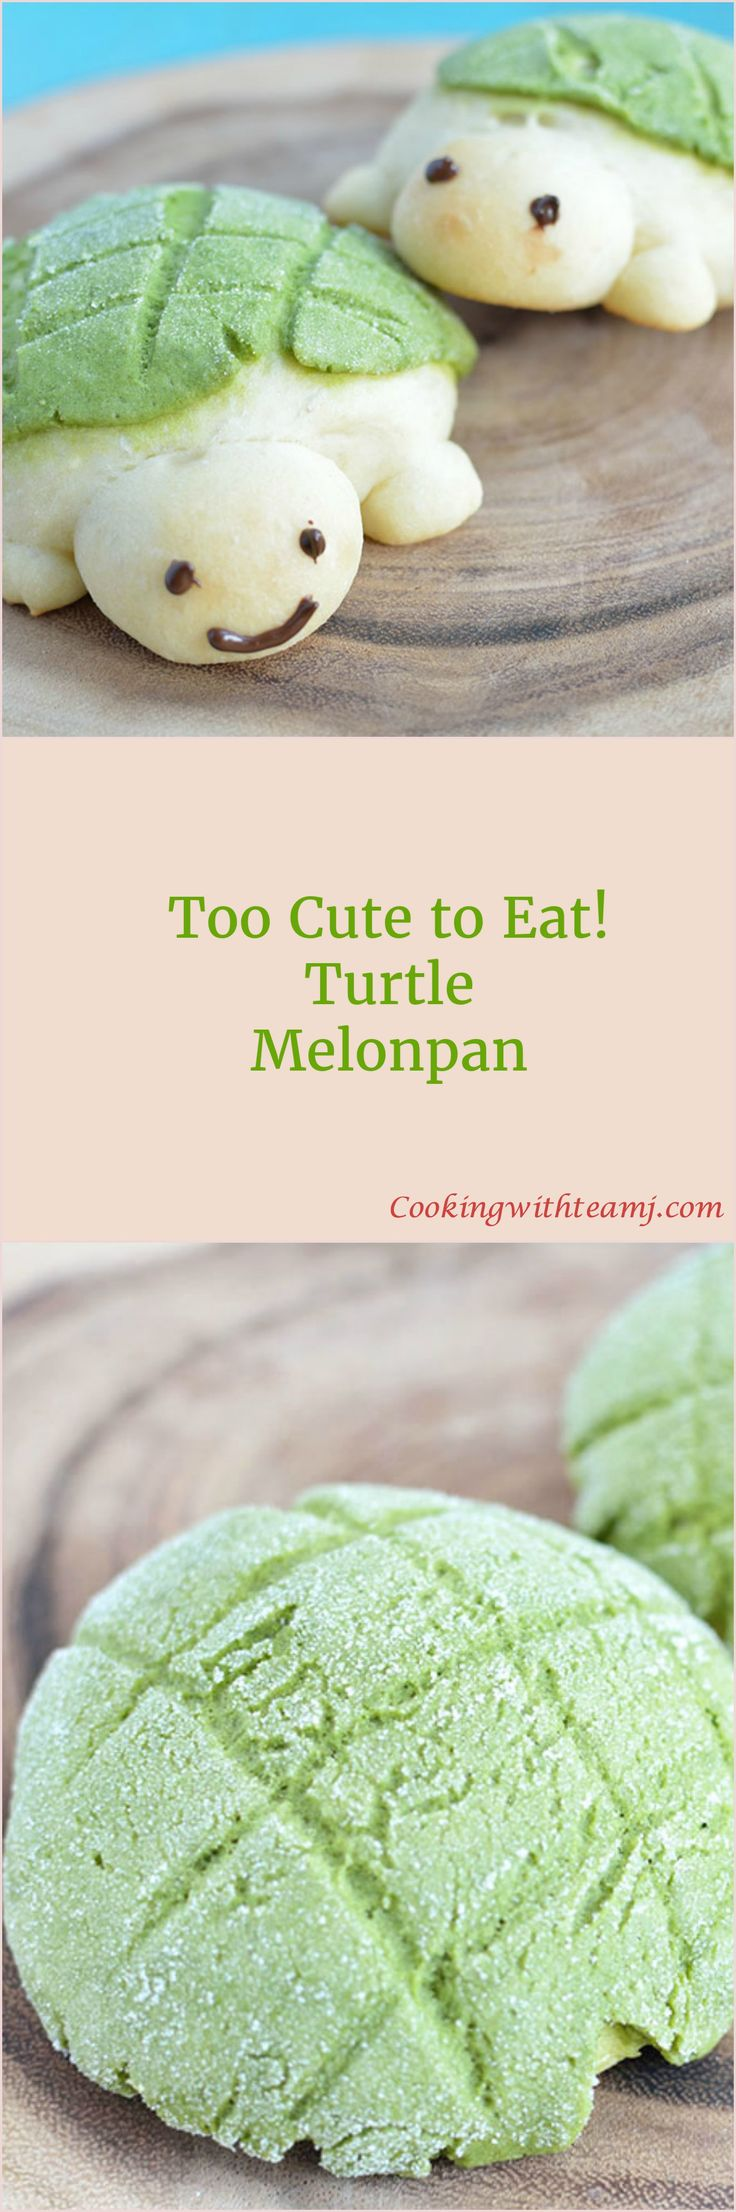 Do melonpan ever remind you of a turtle's back? It sure does to us - that's why we created the Turtle Melonpan. These guys are way too cute to eat!